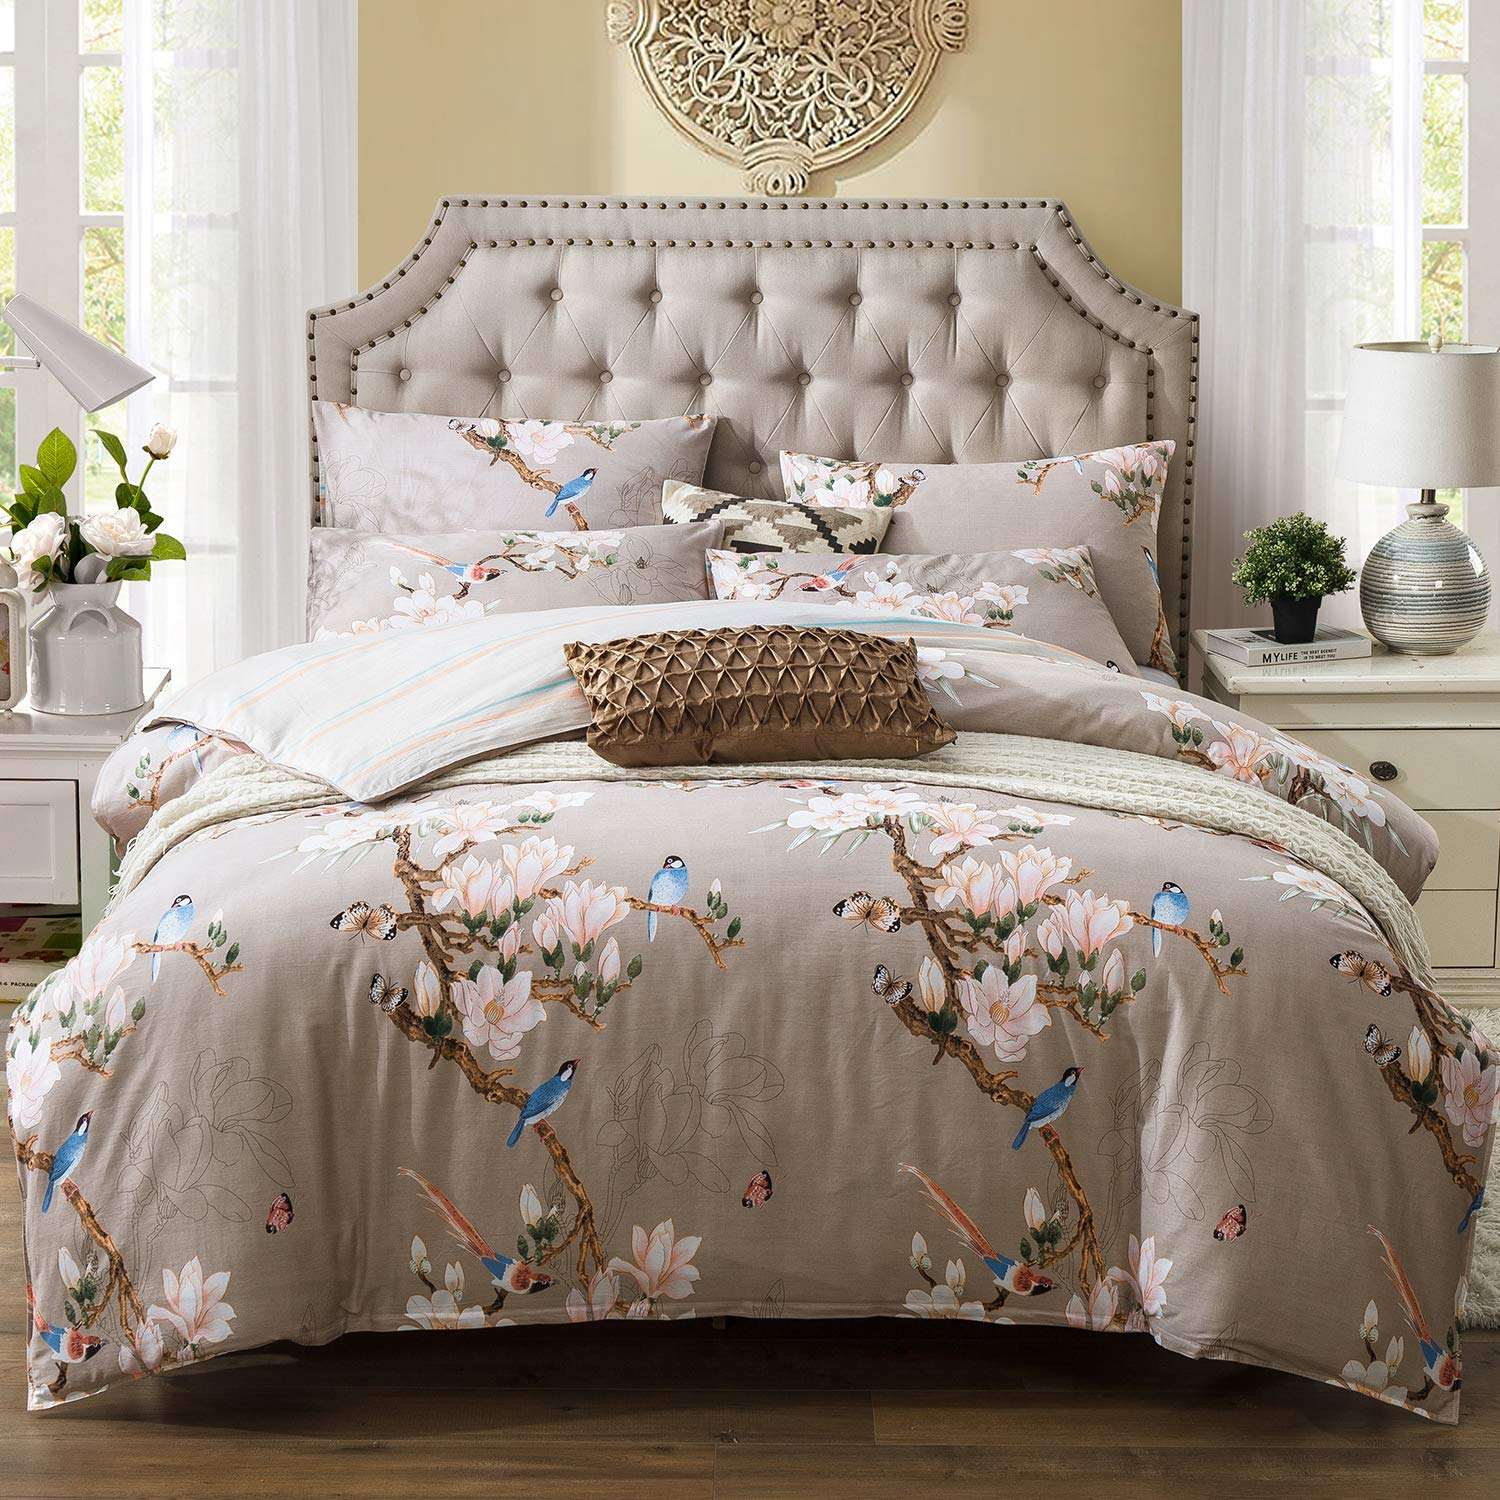 Kosa Bedding 3 Pieces Duvet Cover Set,Botanical Flowers and Birds Pattern Printed, Premium Cotton, Comforter Cover with Zipper Closure,Reversible Pattern Bedding Set (Twin Size)